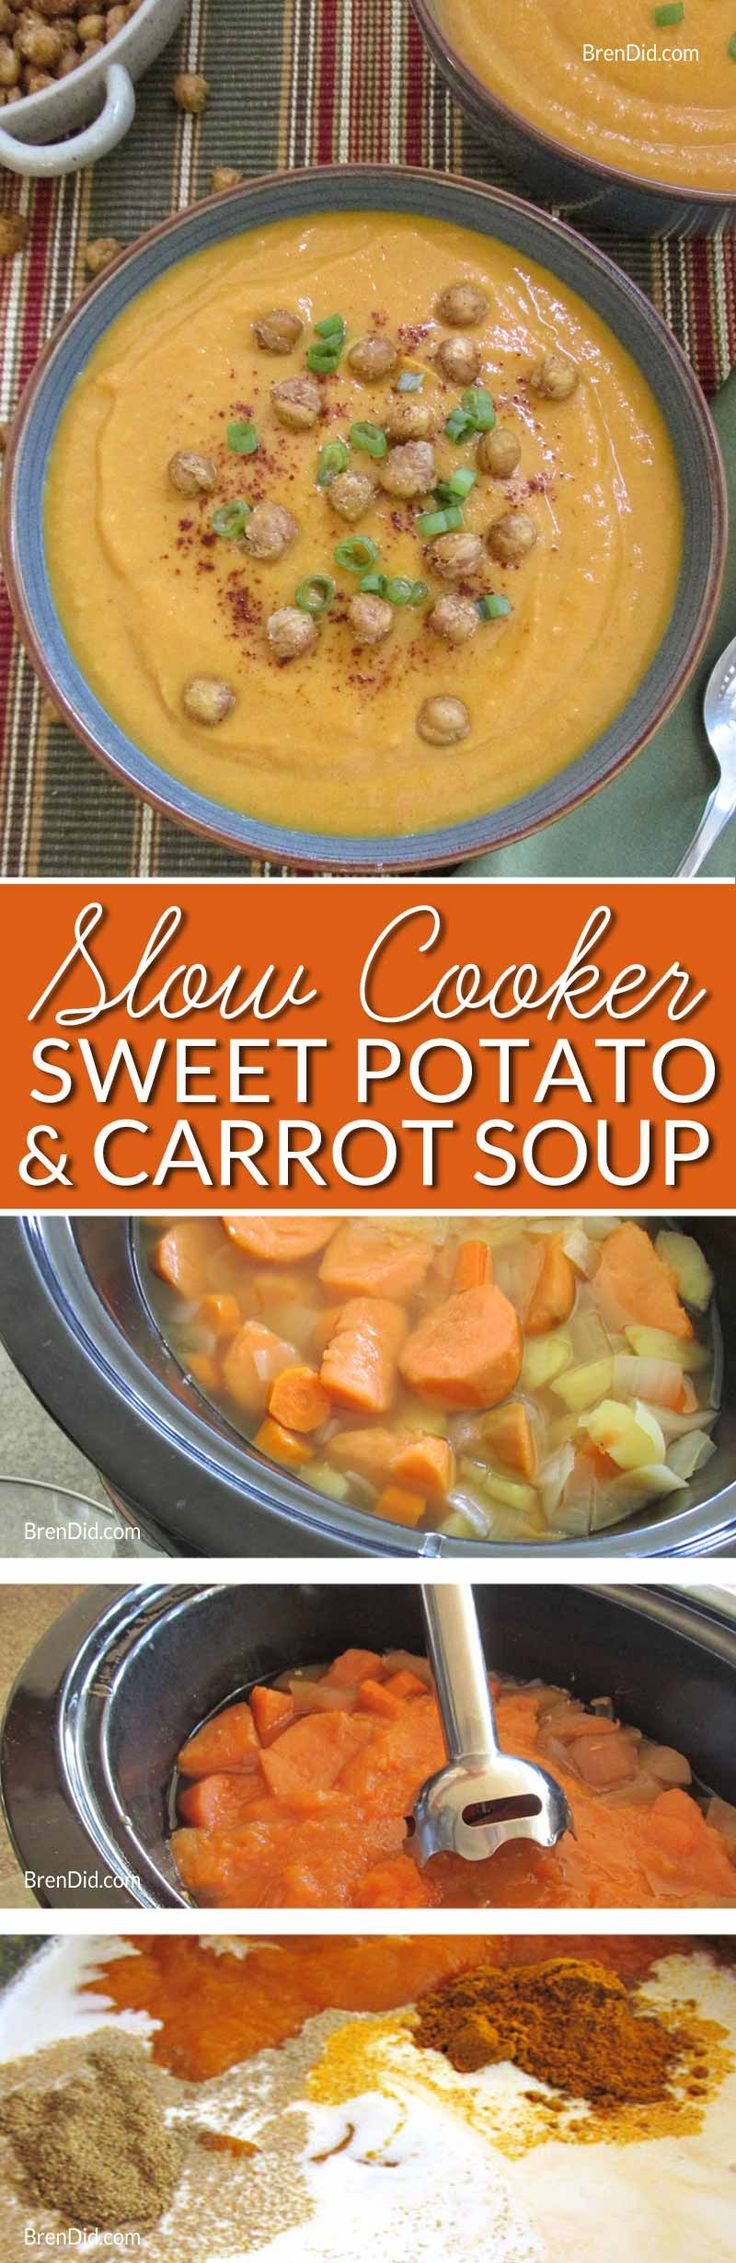 Creamy Sweet Potato and Carrot Soup Recipe – Easy crock pot recipe for creamy soup without any cream! Healthy comfort food topped with crispy garbanzo beans. Velvety smooth loaded with sweet potatoes, carrots, apples.